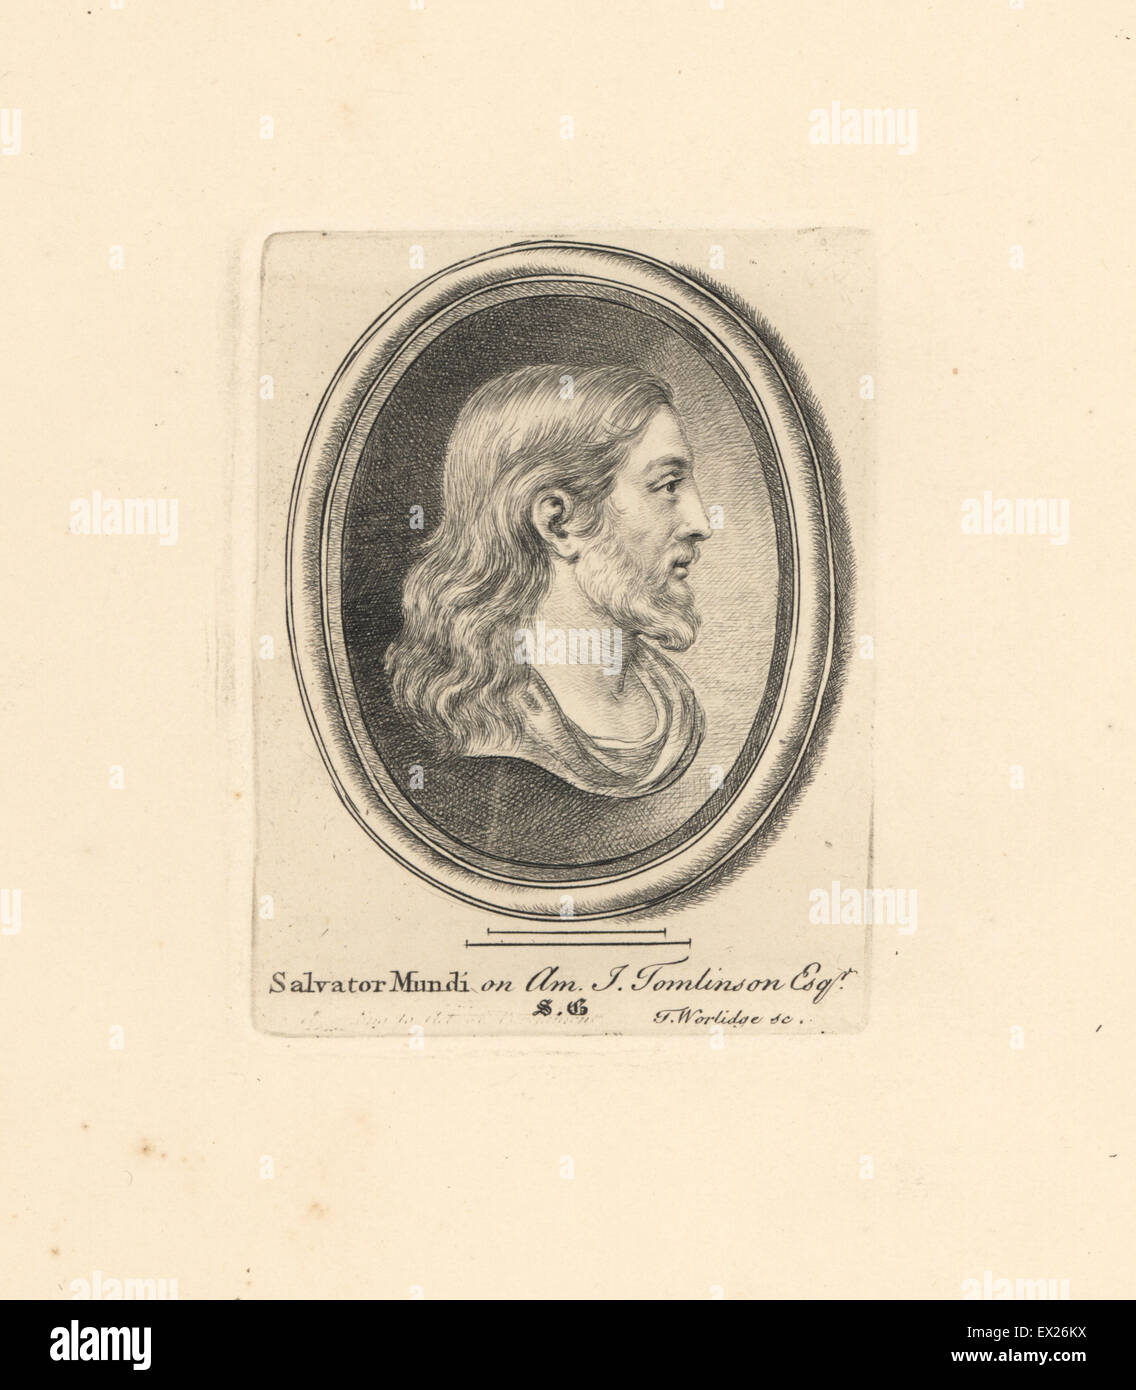 Portrait of Jesus Christ, Salvator Mundi, engraved on amethyst from the collection of J. Tomlinson. Copperplate - Stock Image